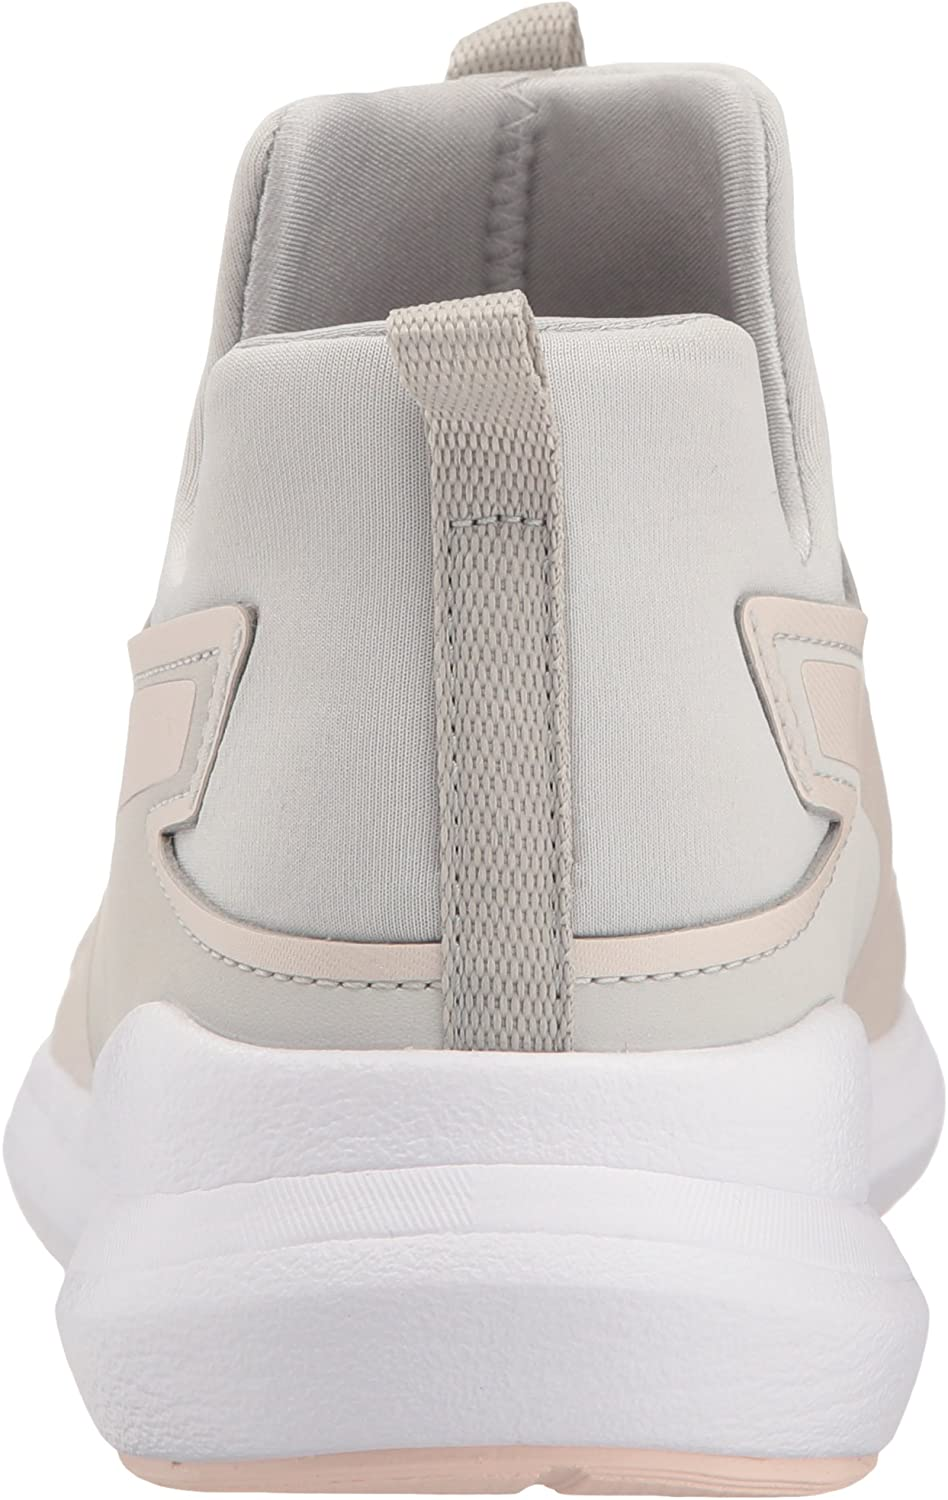 PUMA Rebel Mid Gleam Kids Sneaker